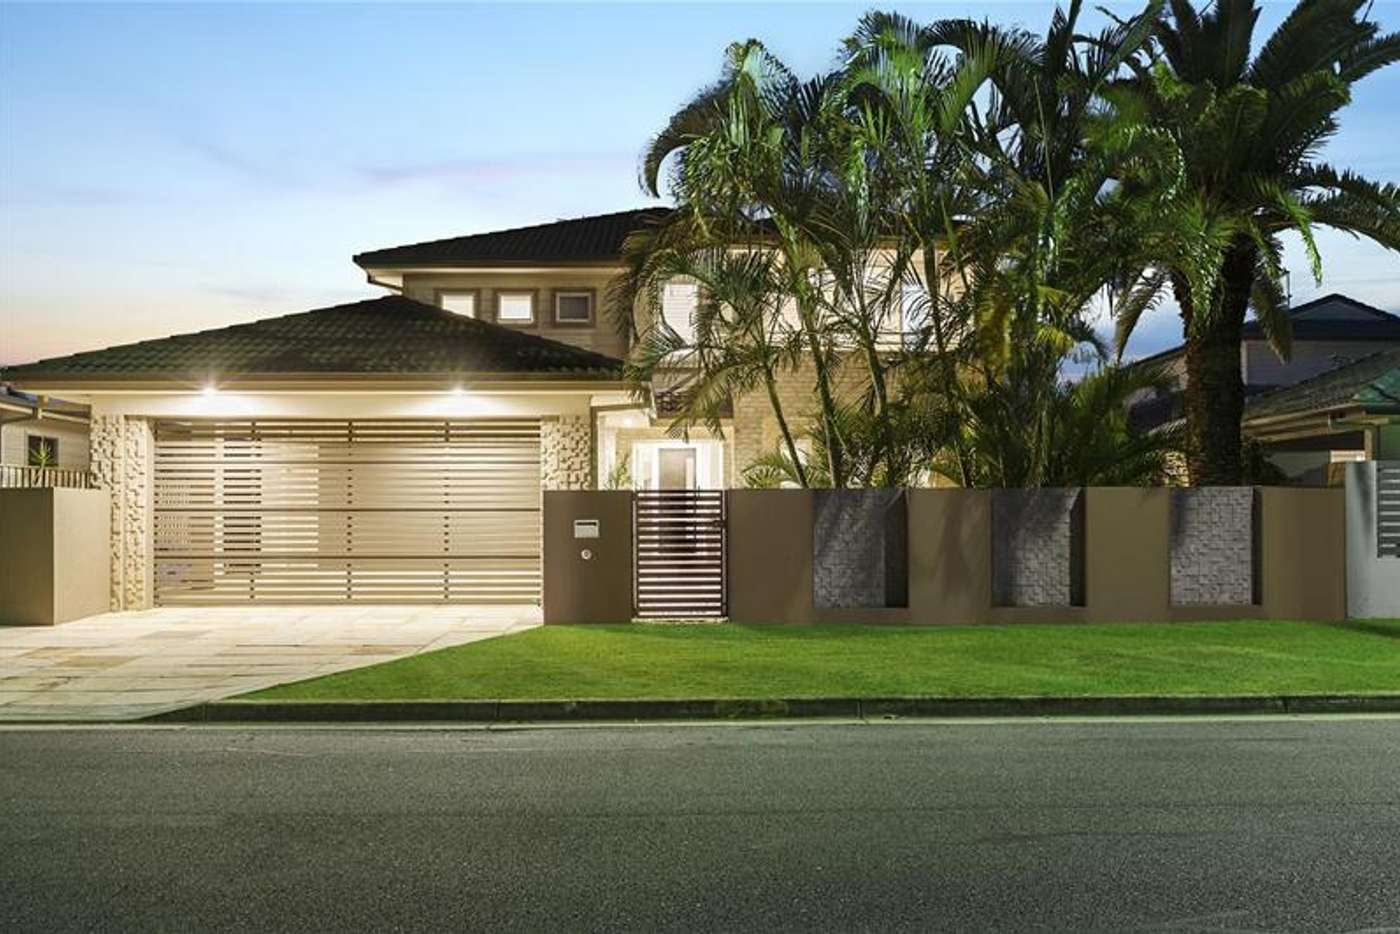 Main view of Homely house listing, 23 Twelfth Avenue, Palm Beach QLD 4221